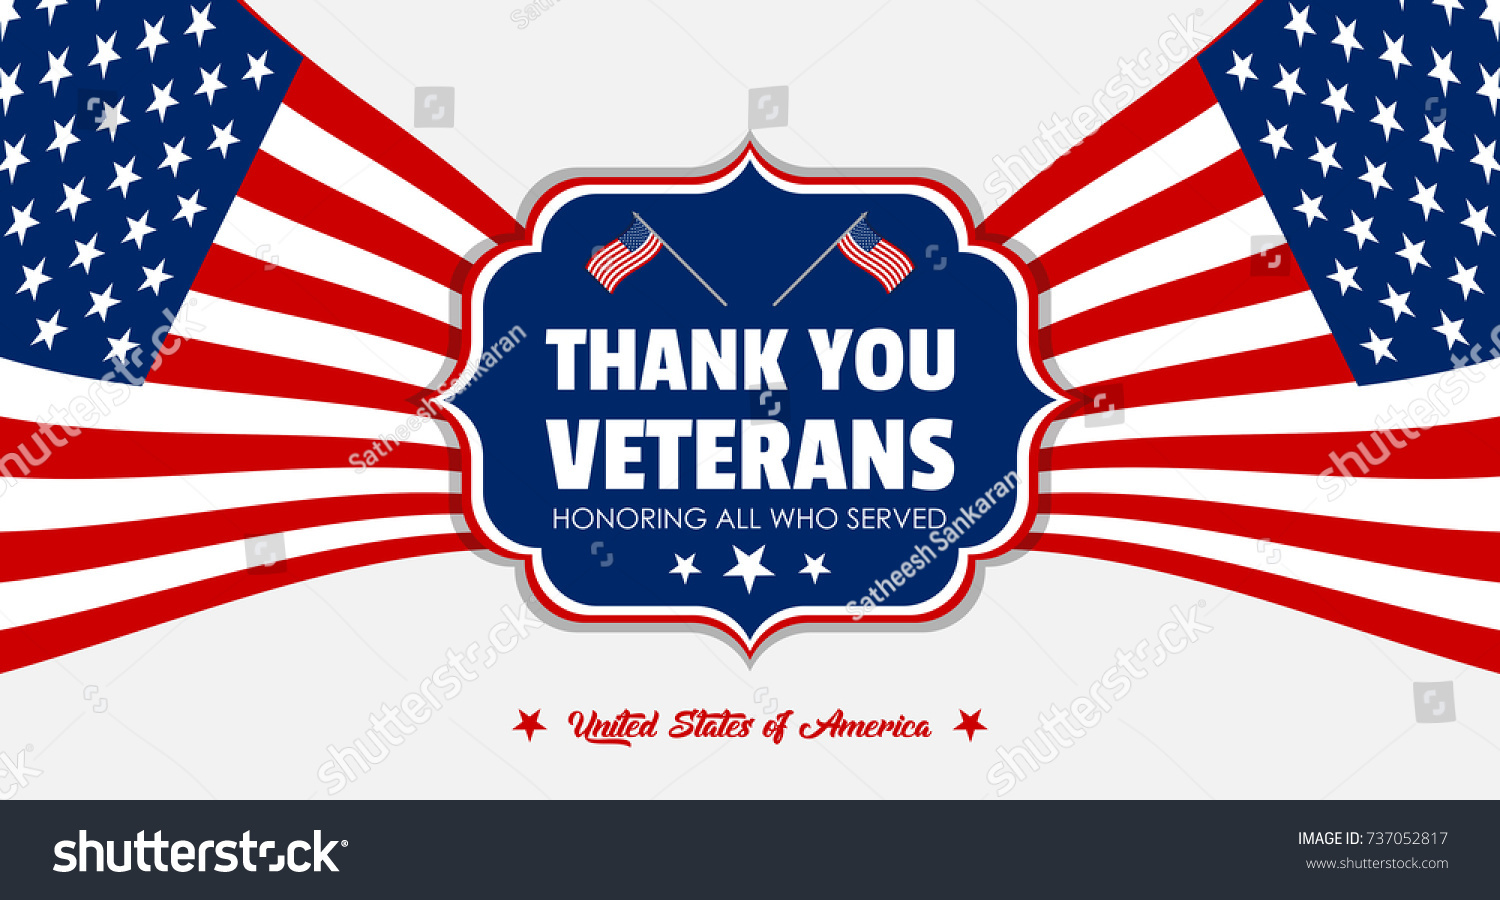 Creative veterans day background greetings united stock vector creative veterans day background and greetings for united states of america patriotic vector elements and kristyandbryce Choice Image